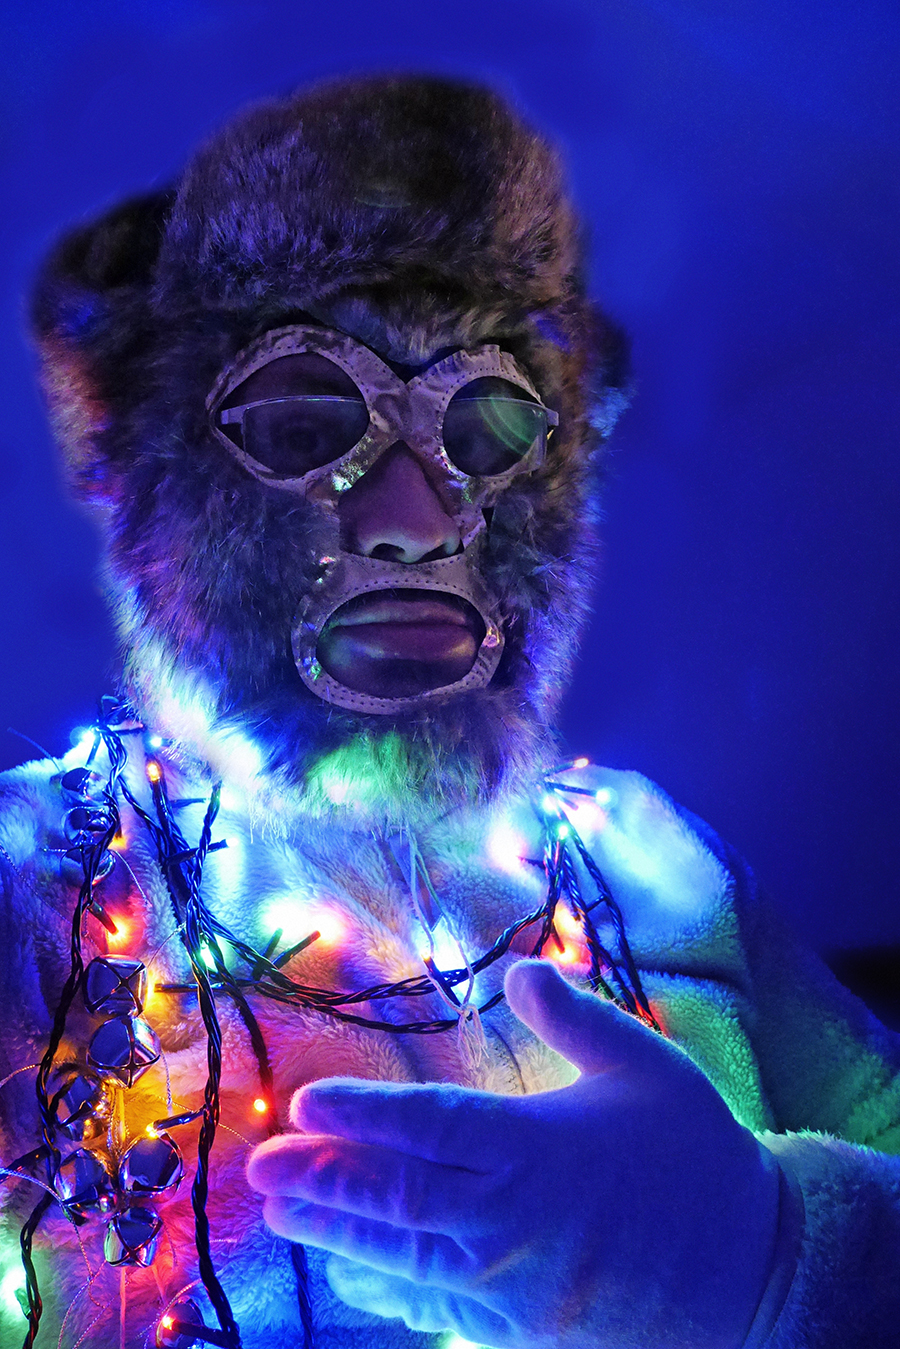 Alistair Gentry as Colonel Robin. A brown fur mask with gold trim and holes for the eyes, nose and mouth- a white fur body, white cotton gloves, and he is wrapped in strings of sleigh bells and coloured Christmas lights.